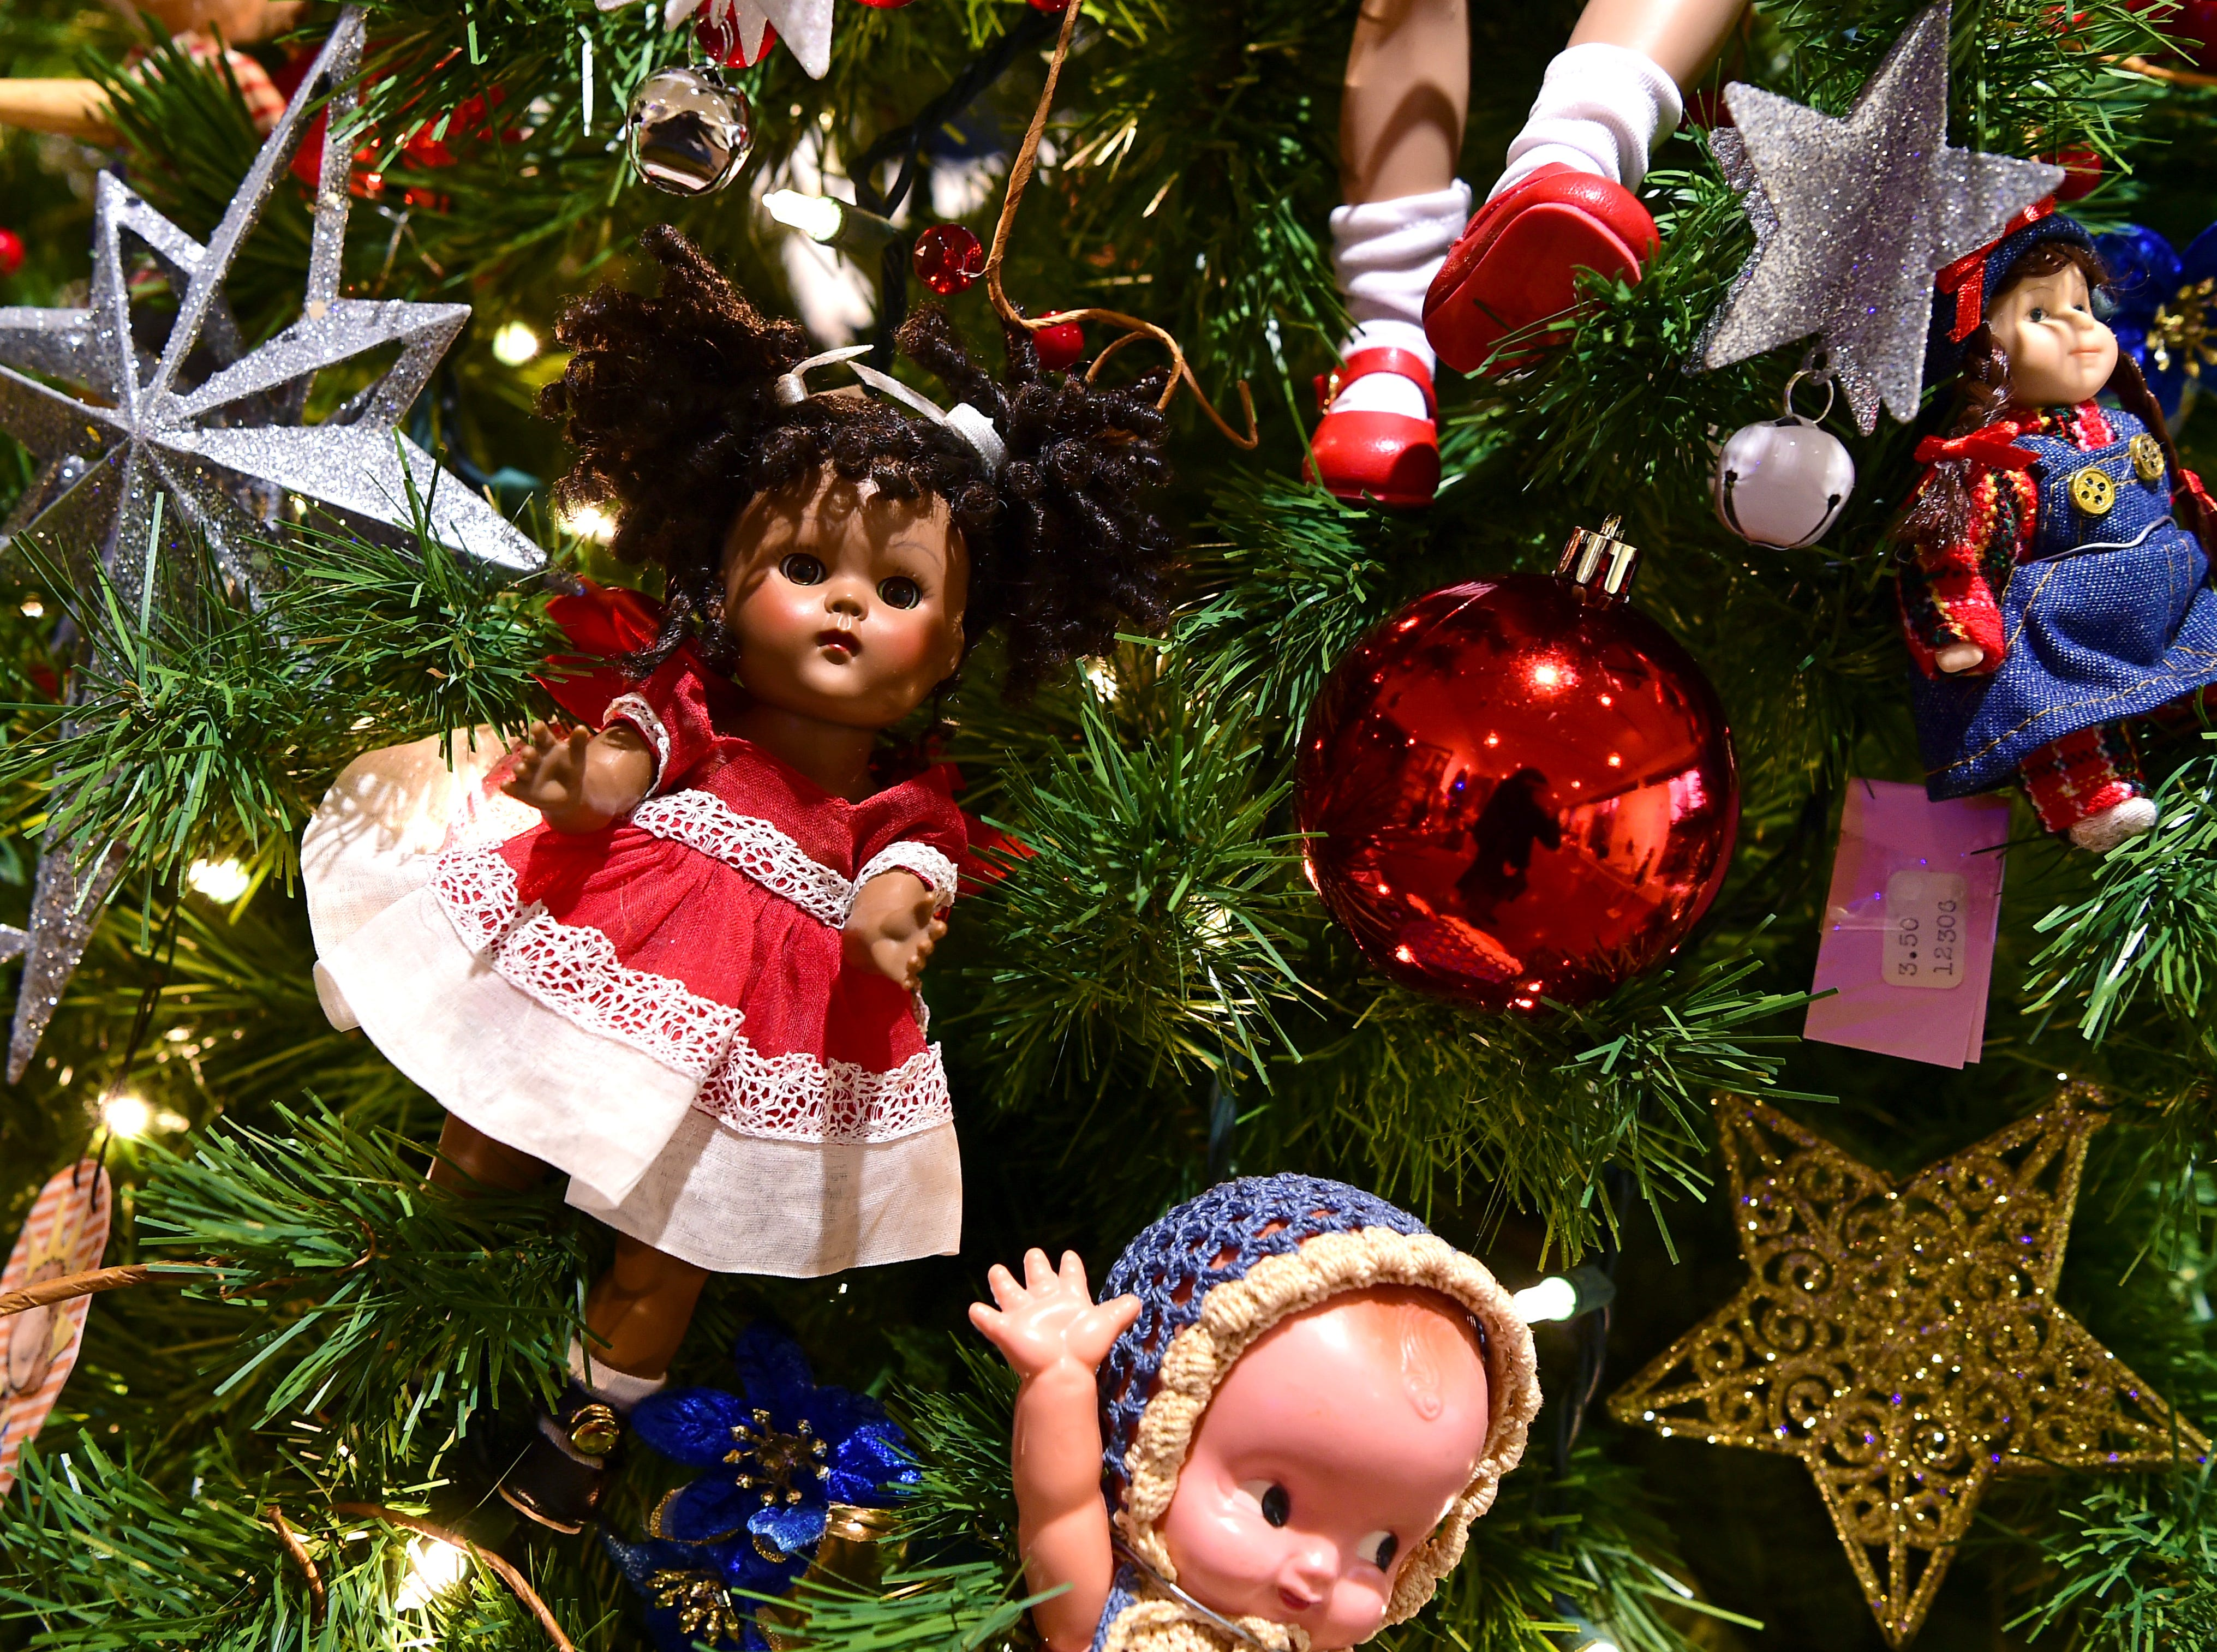 "Broom County Doll Clubs ""Favorite Things"" tree. Roberson Museum and Science Center's annual Home for the Holidays event opens on November 14 and continues through January 6. The event features hundreds of elaborately decorated holiday trees and displays. November 12, 2018."